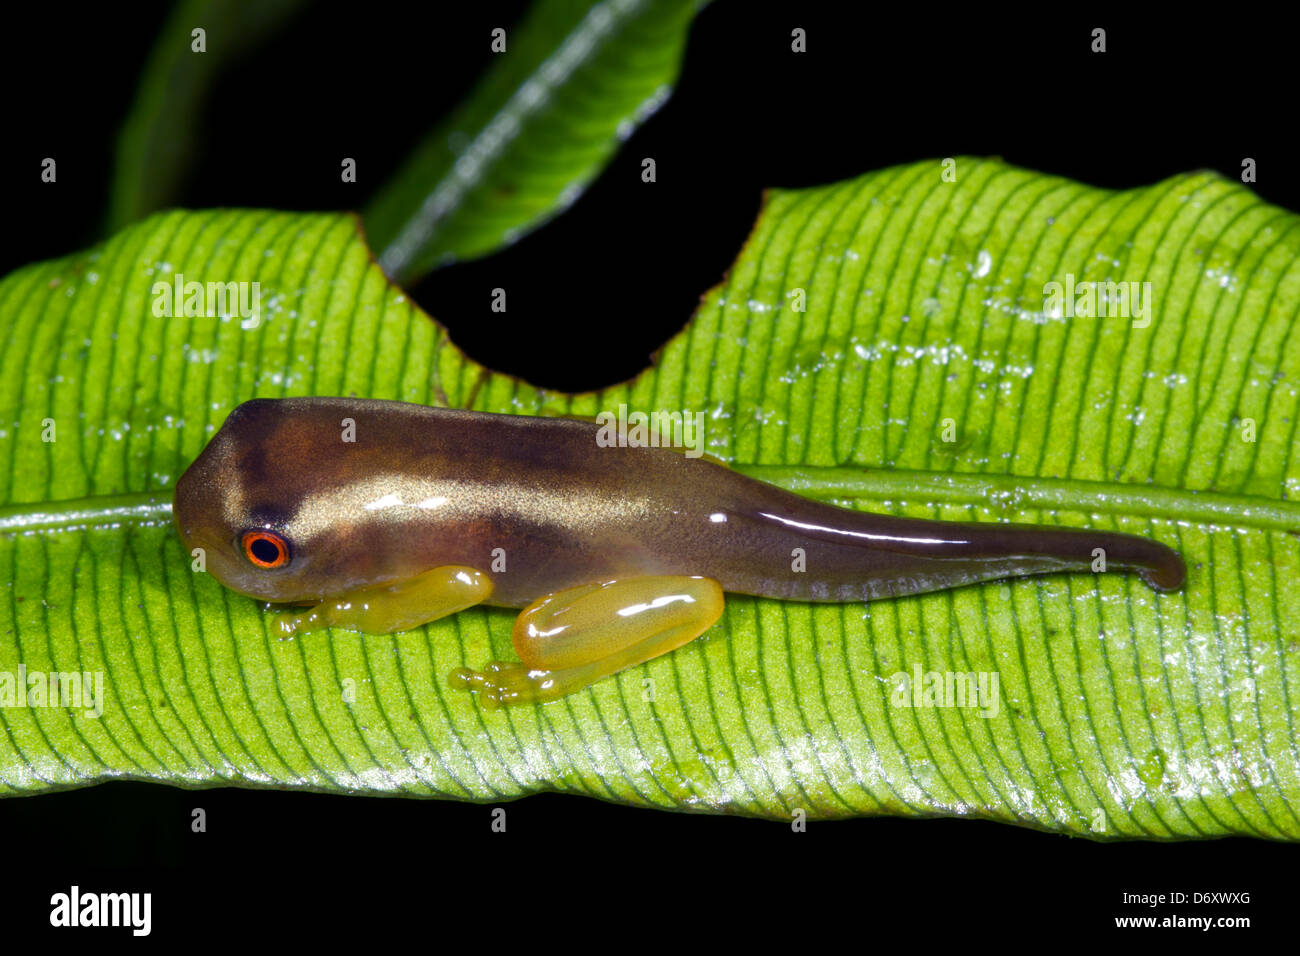 Treefrog tadpole changing into a frog - Stock Image